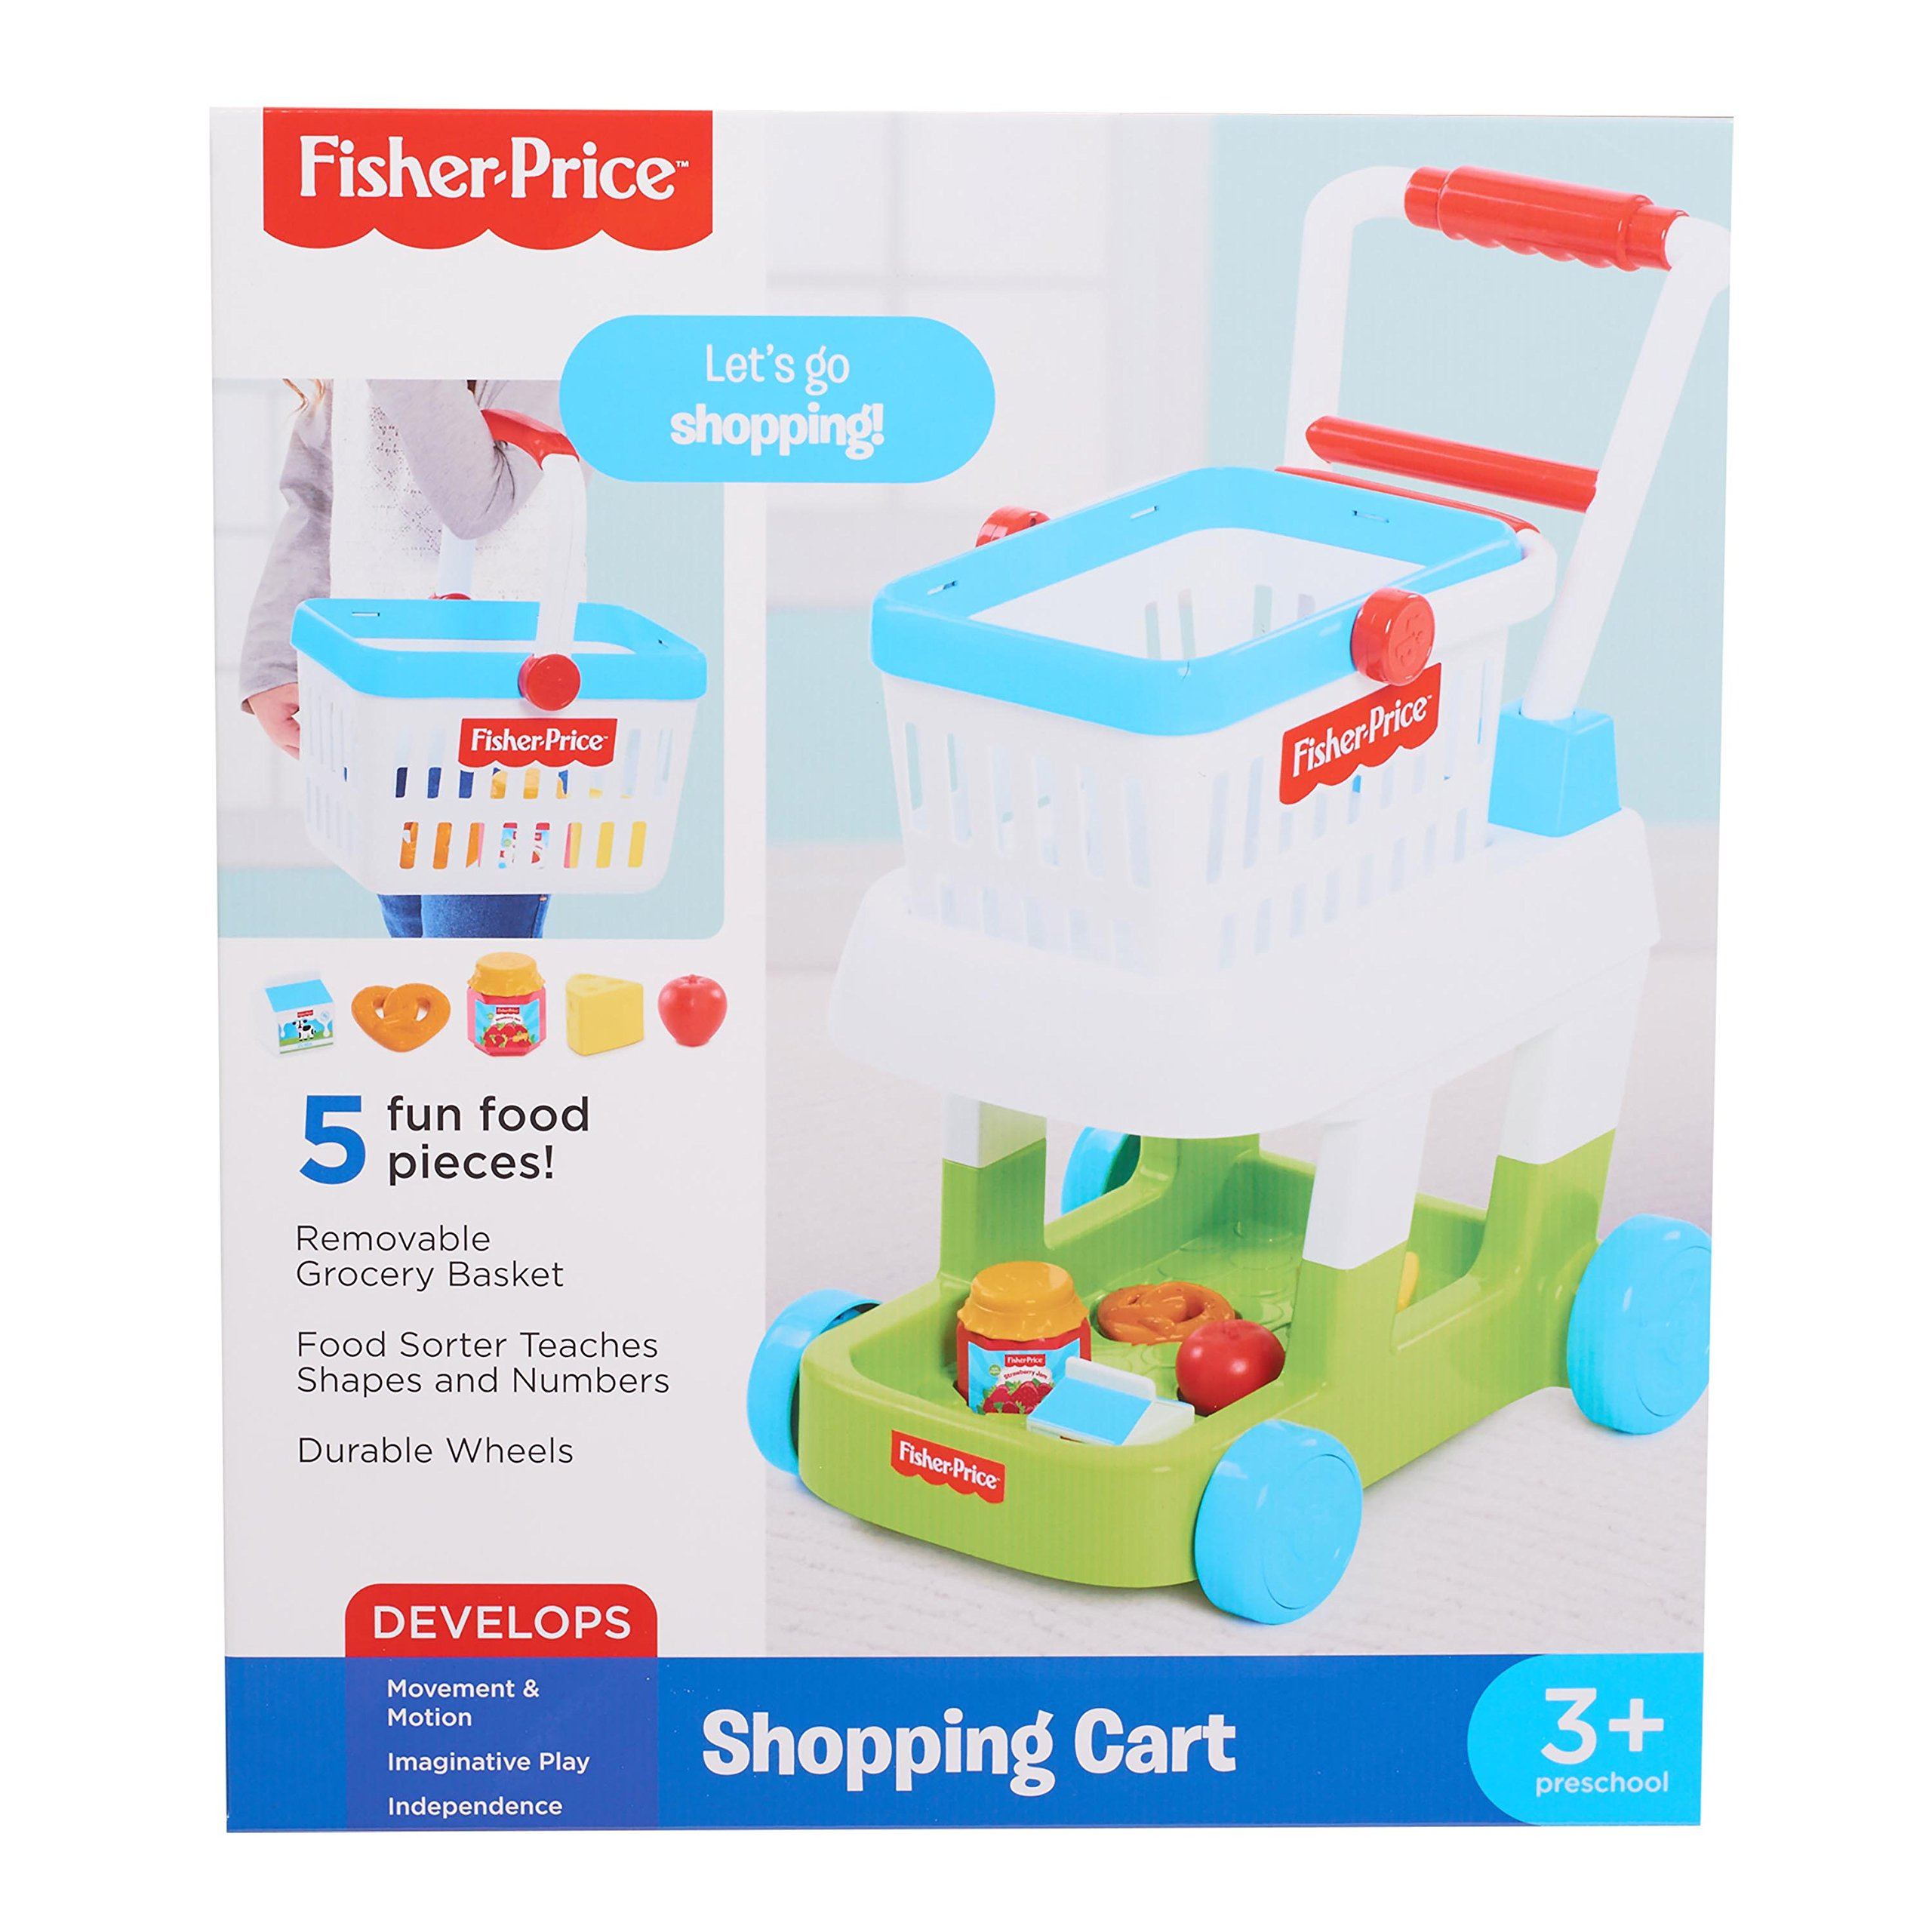 Fisher-Price 93525 Shopping Cart Toys, Multicolor by Fisher-Price (Image #7)